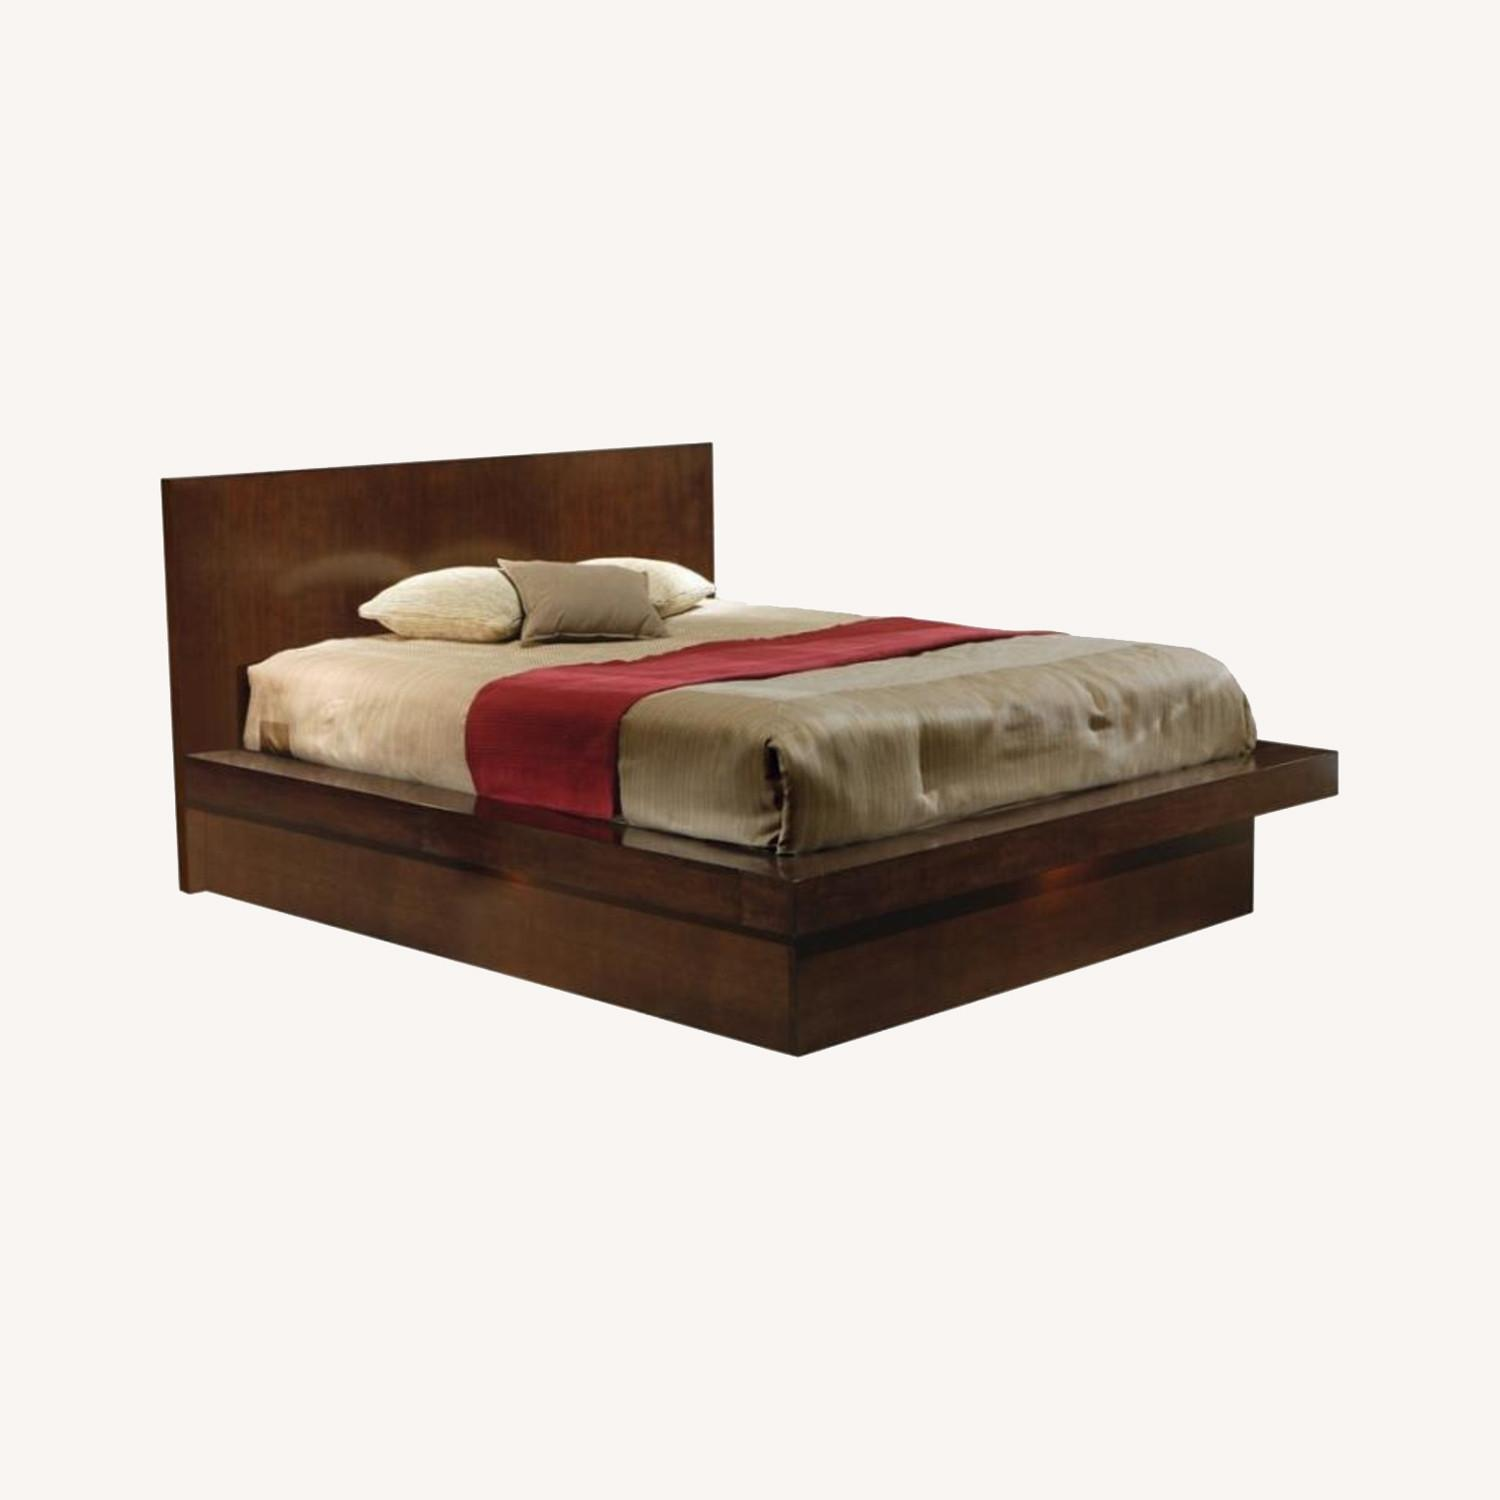 King Bed In Rich Cappuccino Finish - image-3